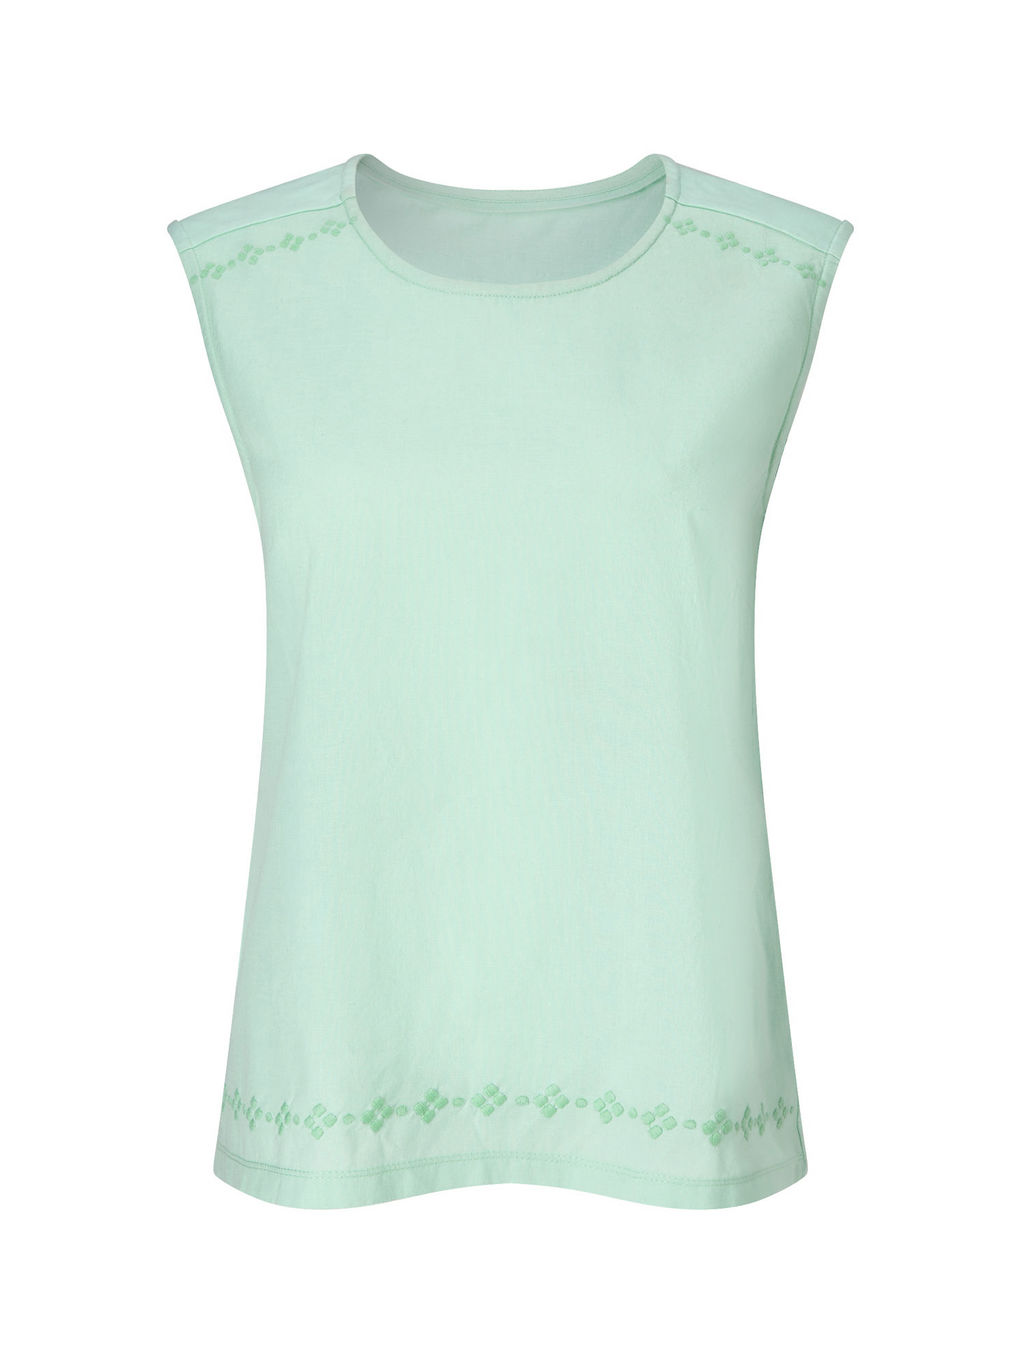 Lagoon Woven Jersey Top - pattern: plain; sleeve style: sleeveless; style: vest top; predominant colour: pistachio; occasions: casual; length: standard; fibres: cotton - 100%; fit: straight cut; neckline: crew; sleeve length: sleeveless; texture group: cotton feel fabrics; pattern type: fabric; embellishment: embroidered; season: s/s 2016; wardrobe: highlight